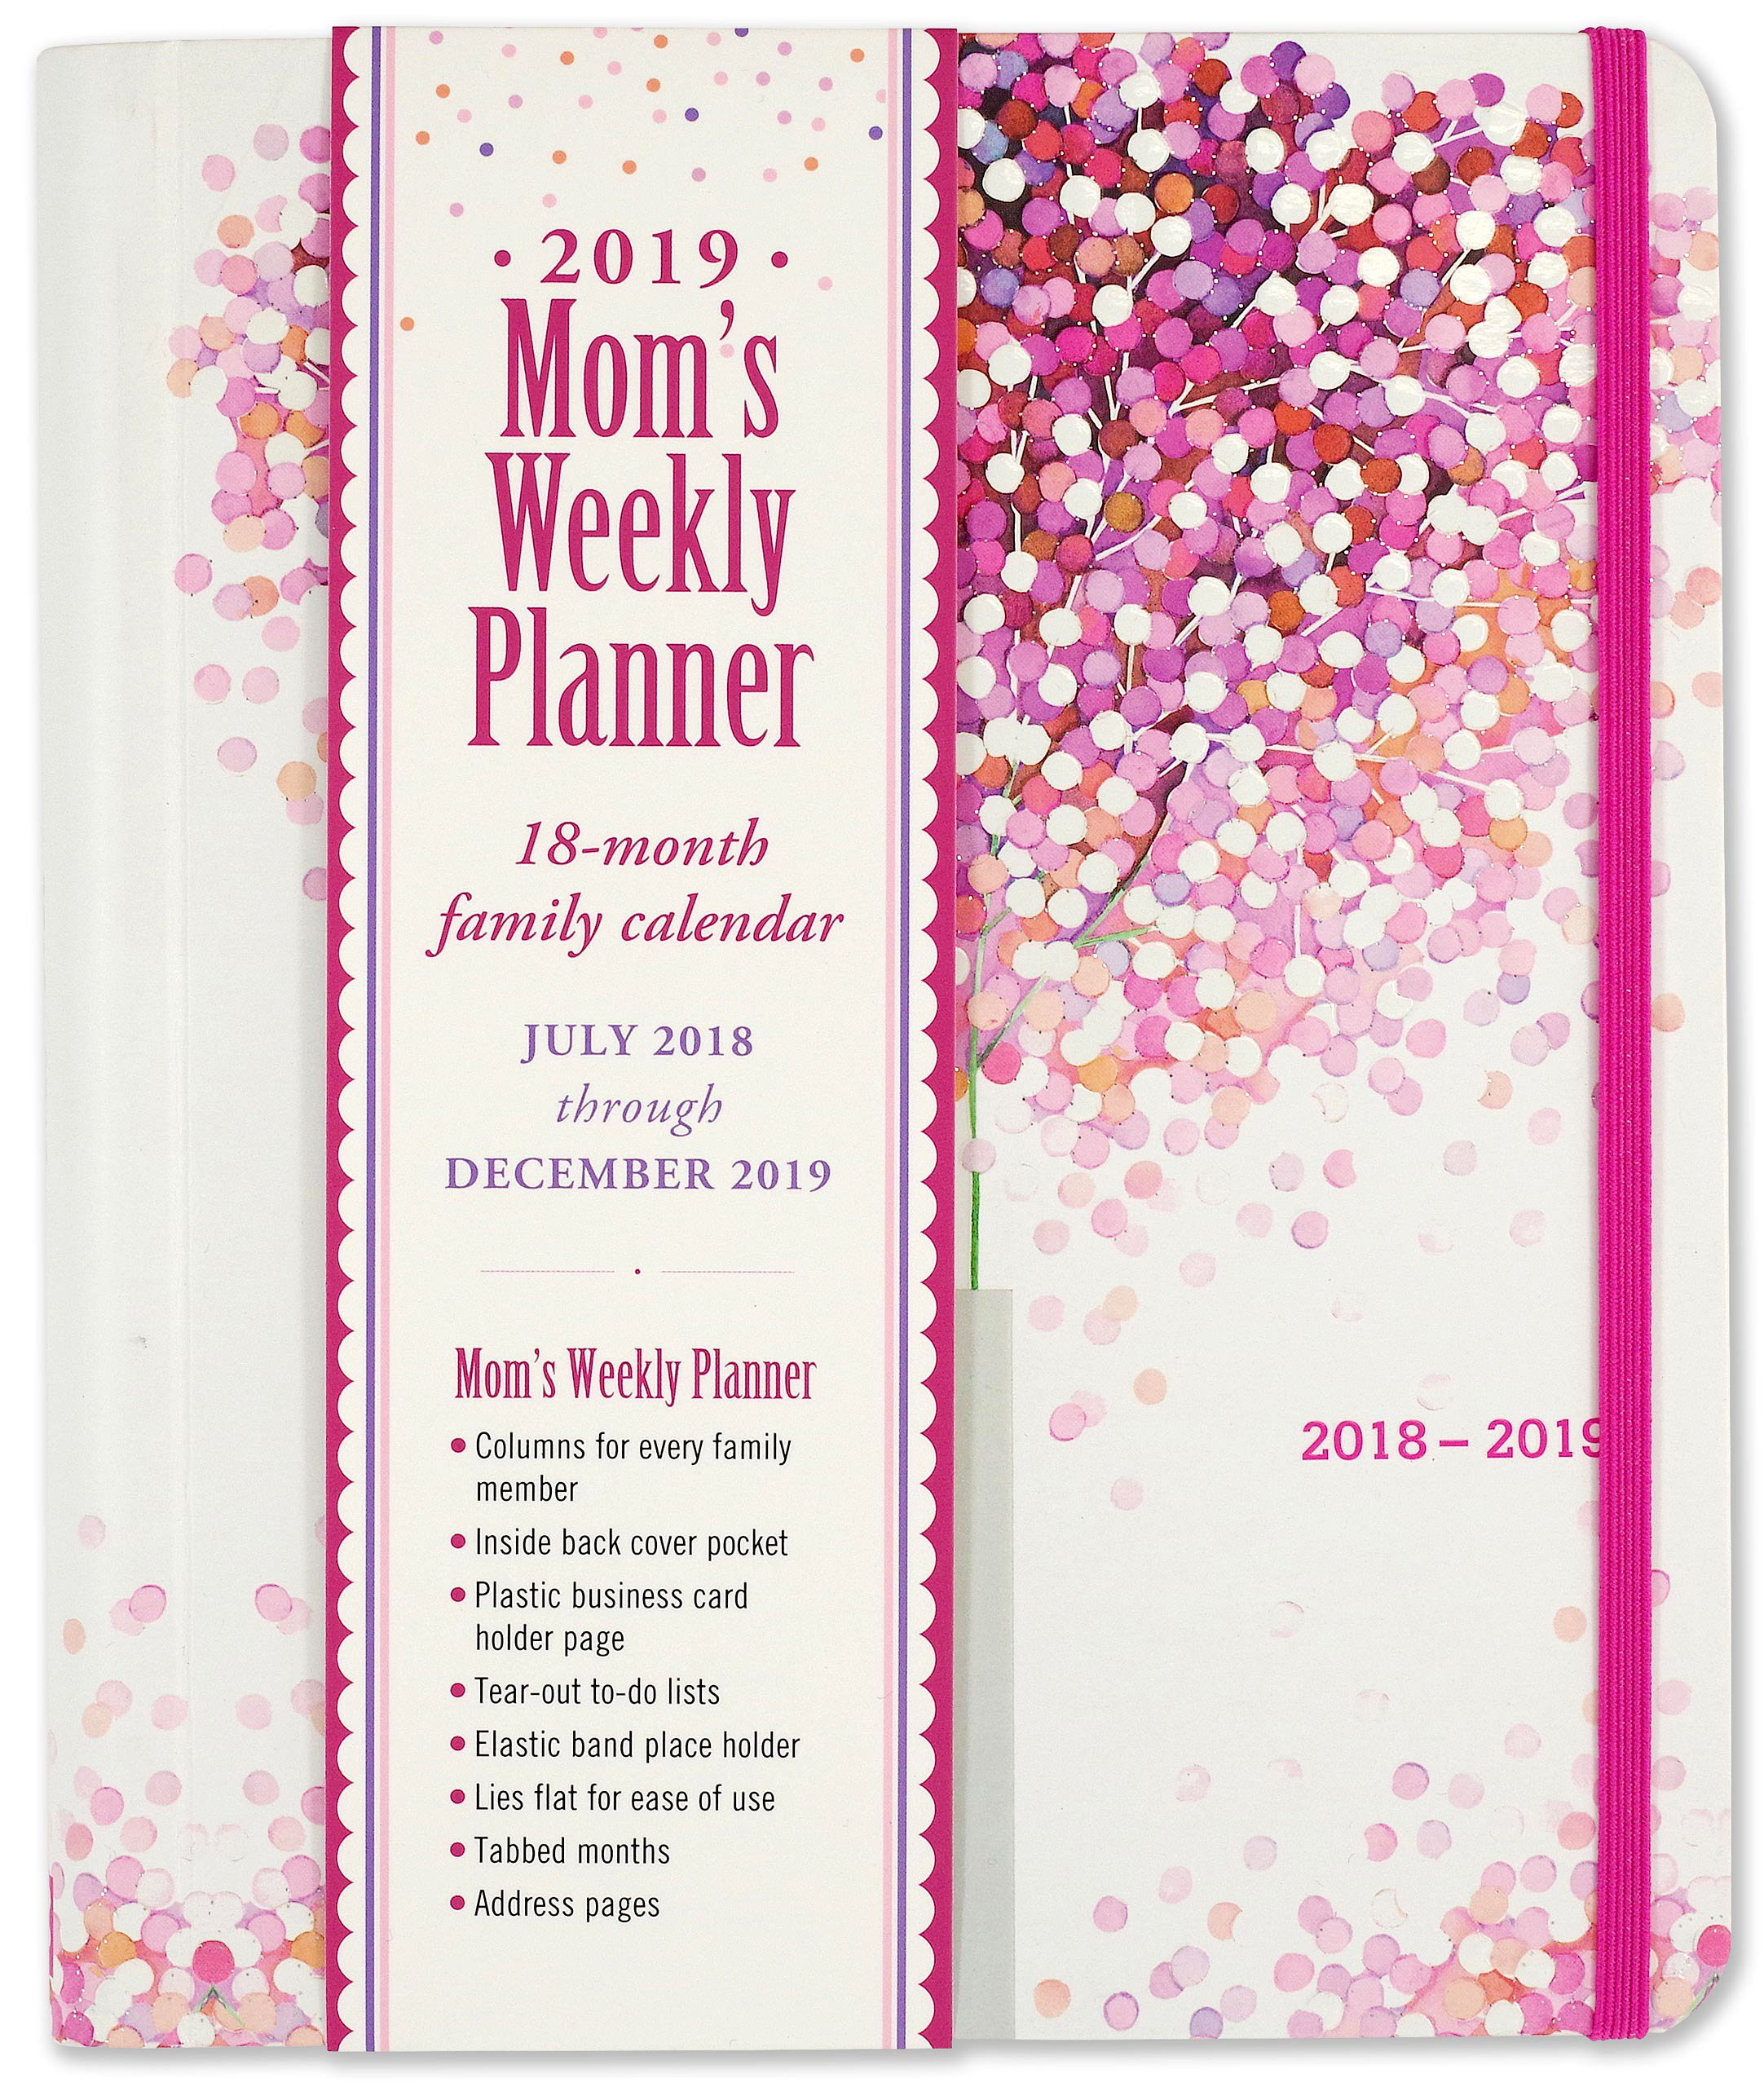 Calendar 2019 Business Card July December 2019 Lollipop Tree Mom's Weekly Planner (18 Month Family Calendar